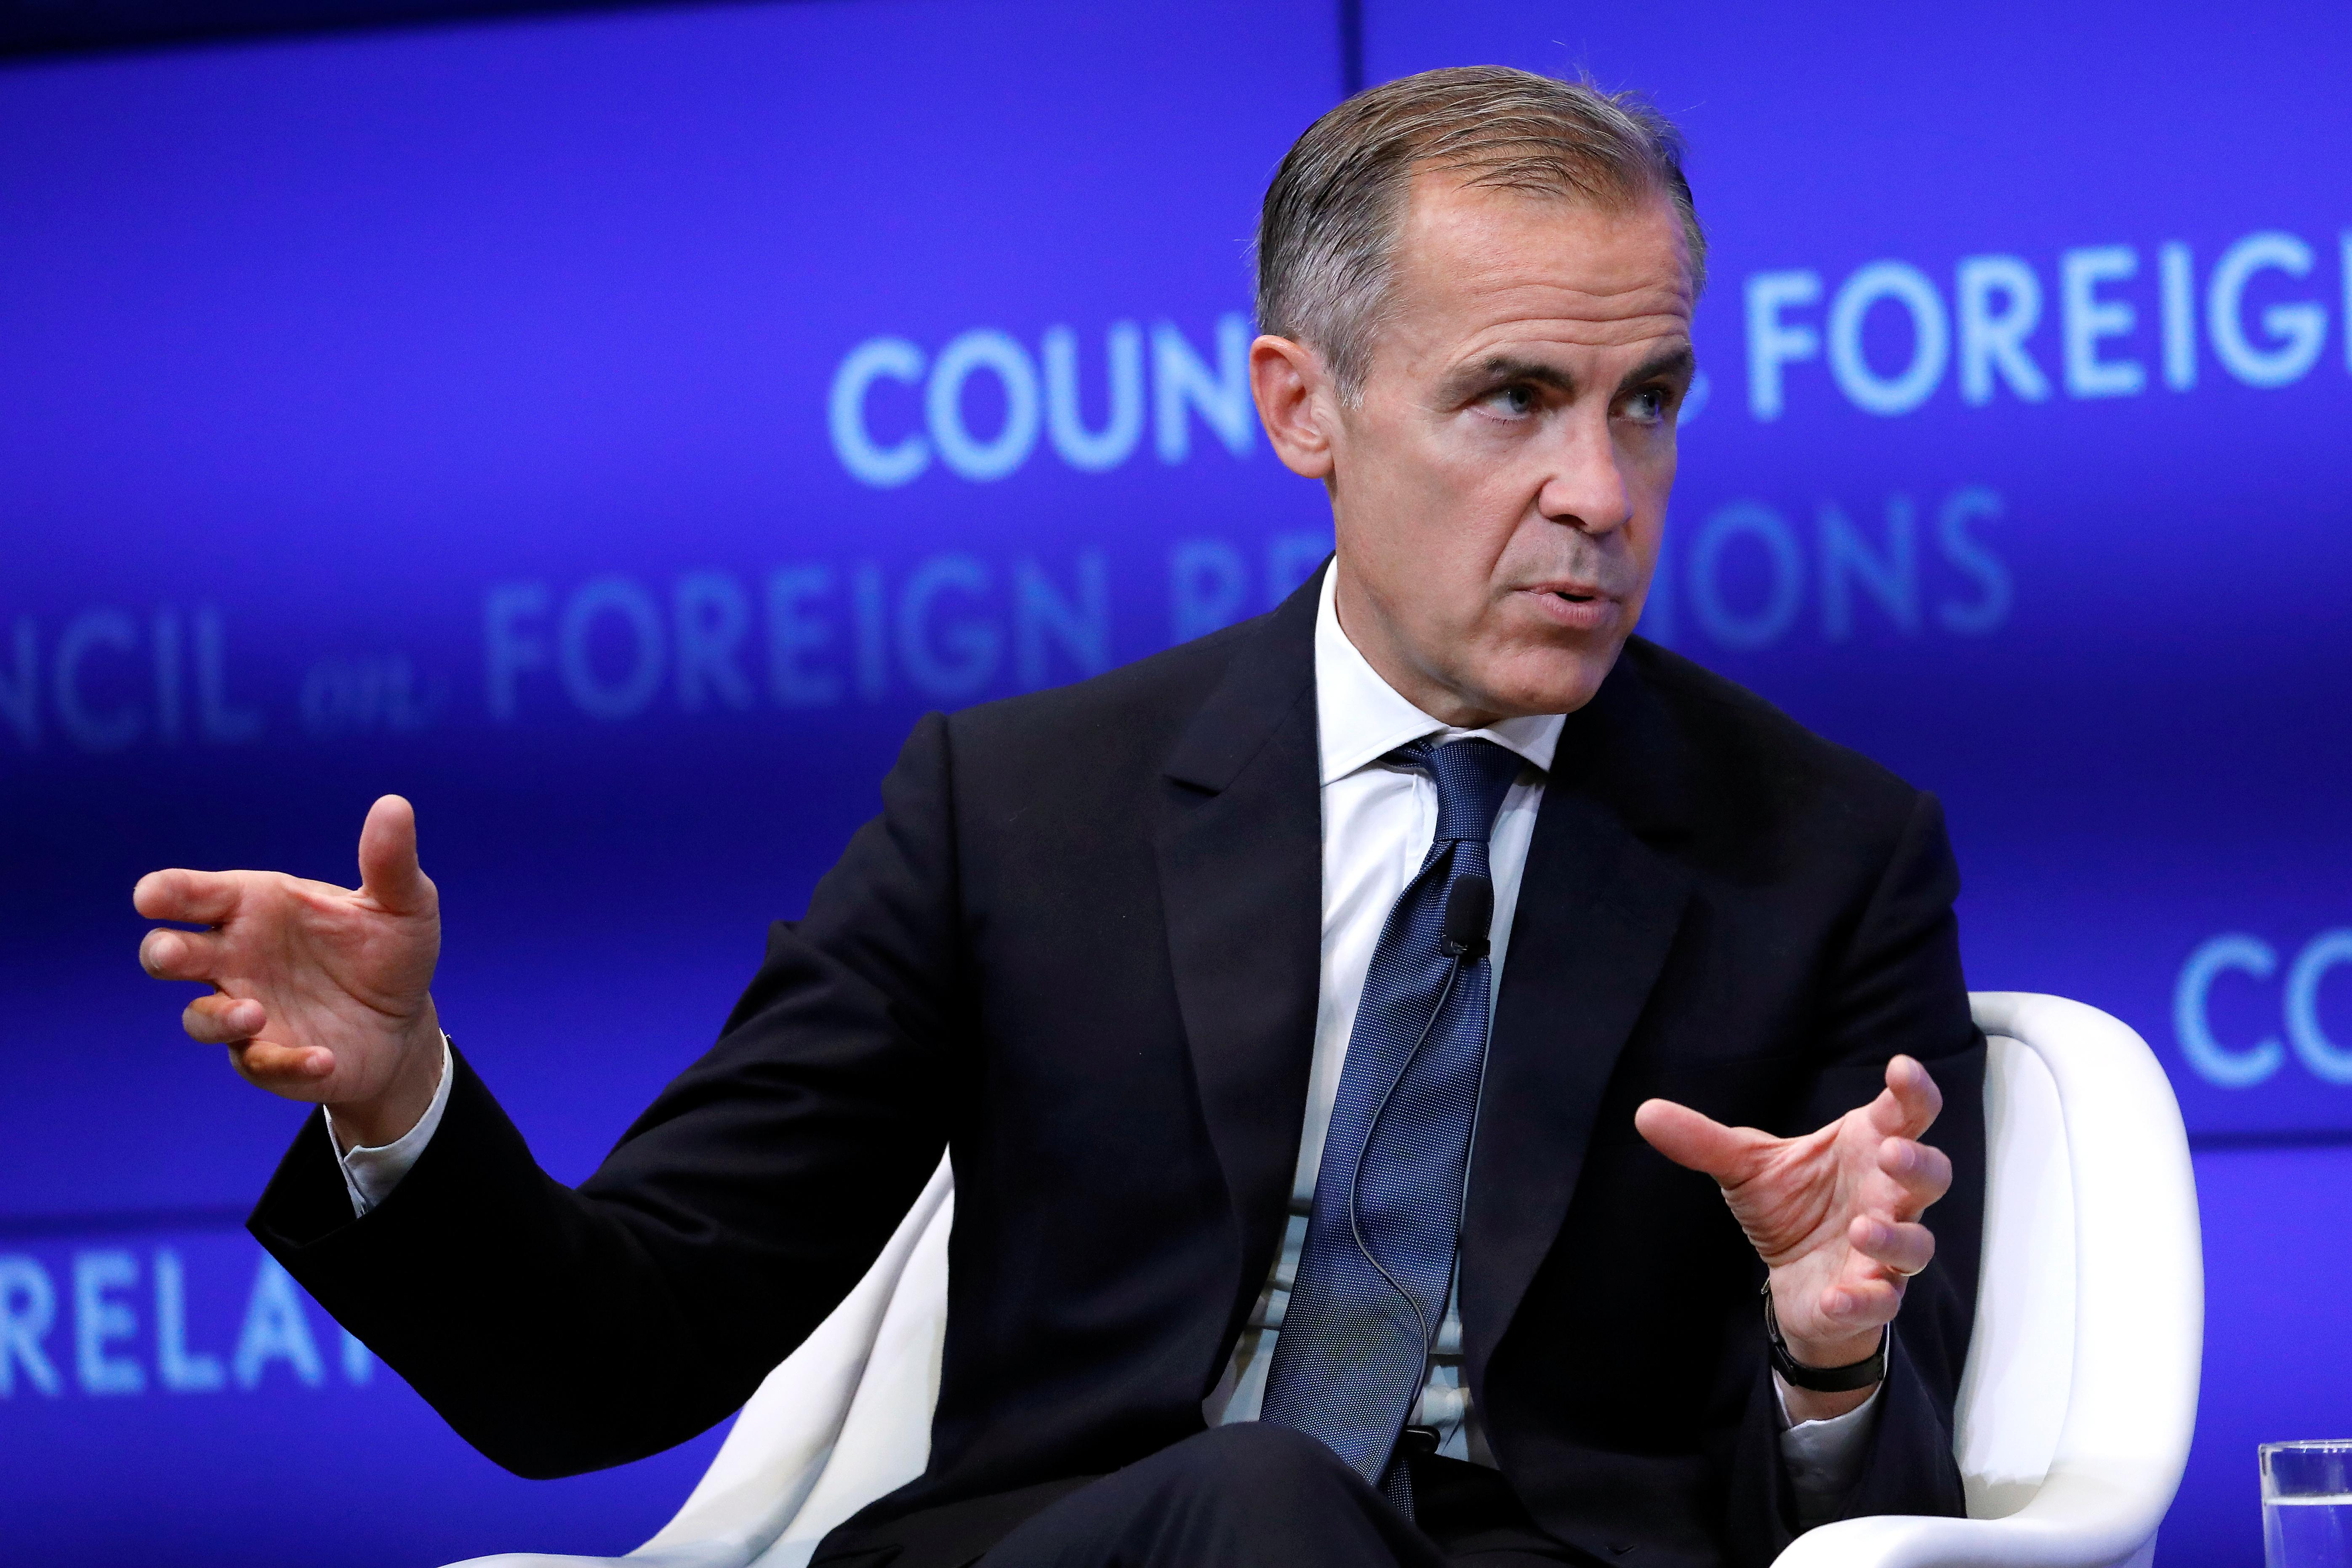 BoE can fight a new slowdown, but fiscal policy has role too: Carney